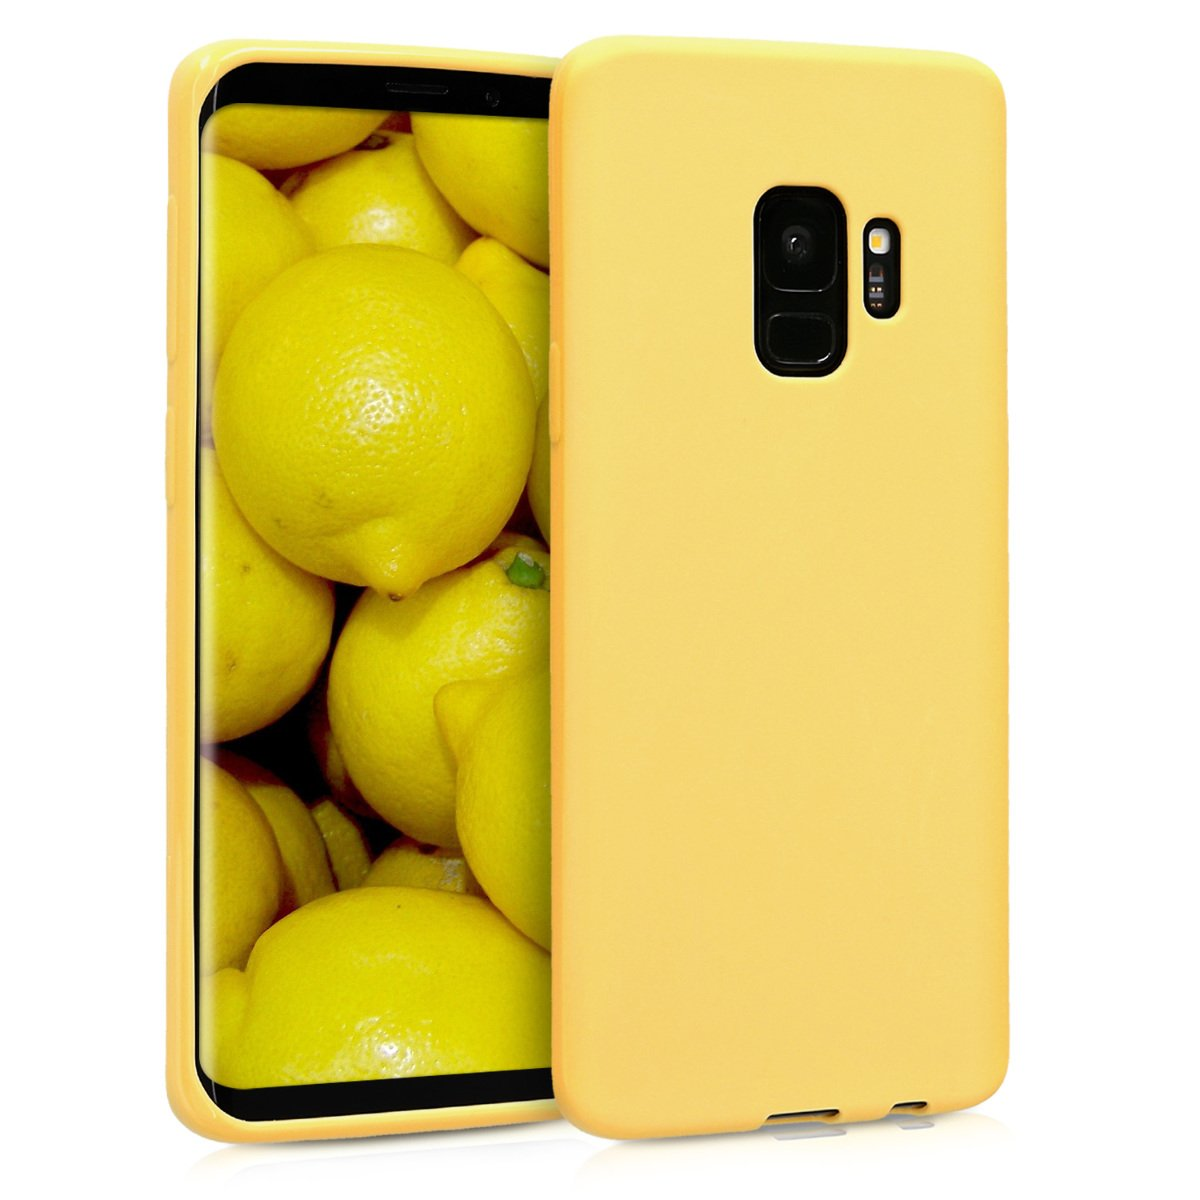 new product 124cb f3cc6 kwmobile TPU Silicone Case for Samsung Galaxy S9 - Soft Flexible Shock  Absorbent Protective Phone Cover - Yellow Matte